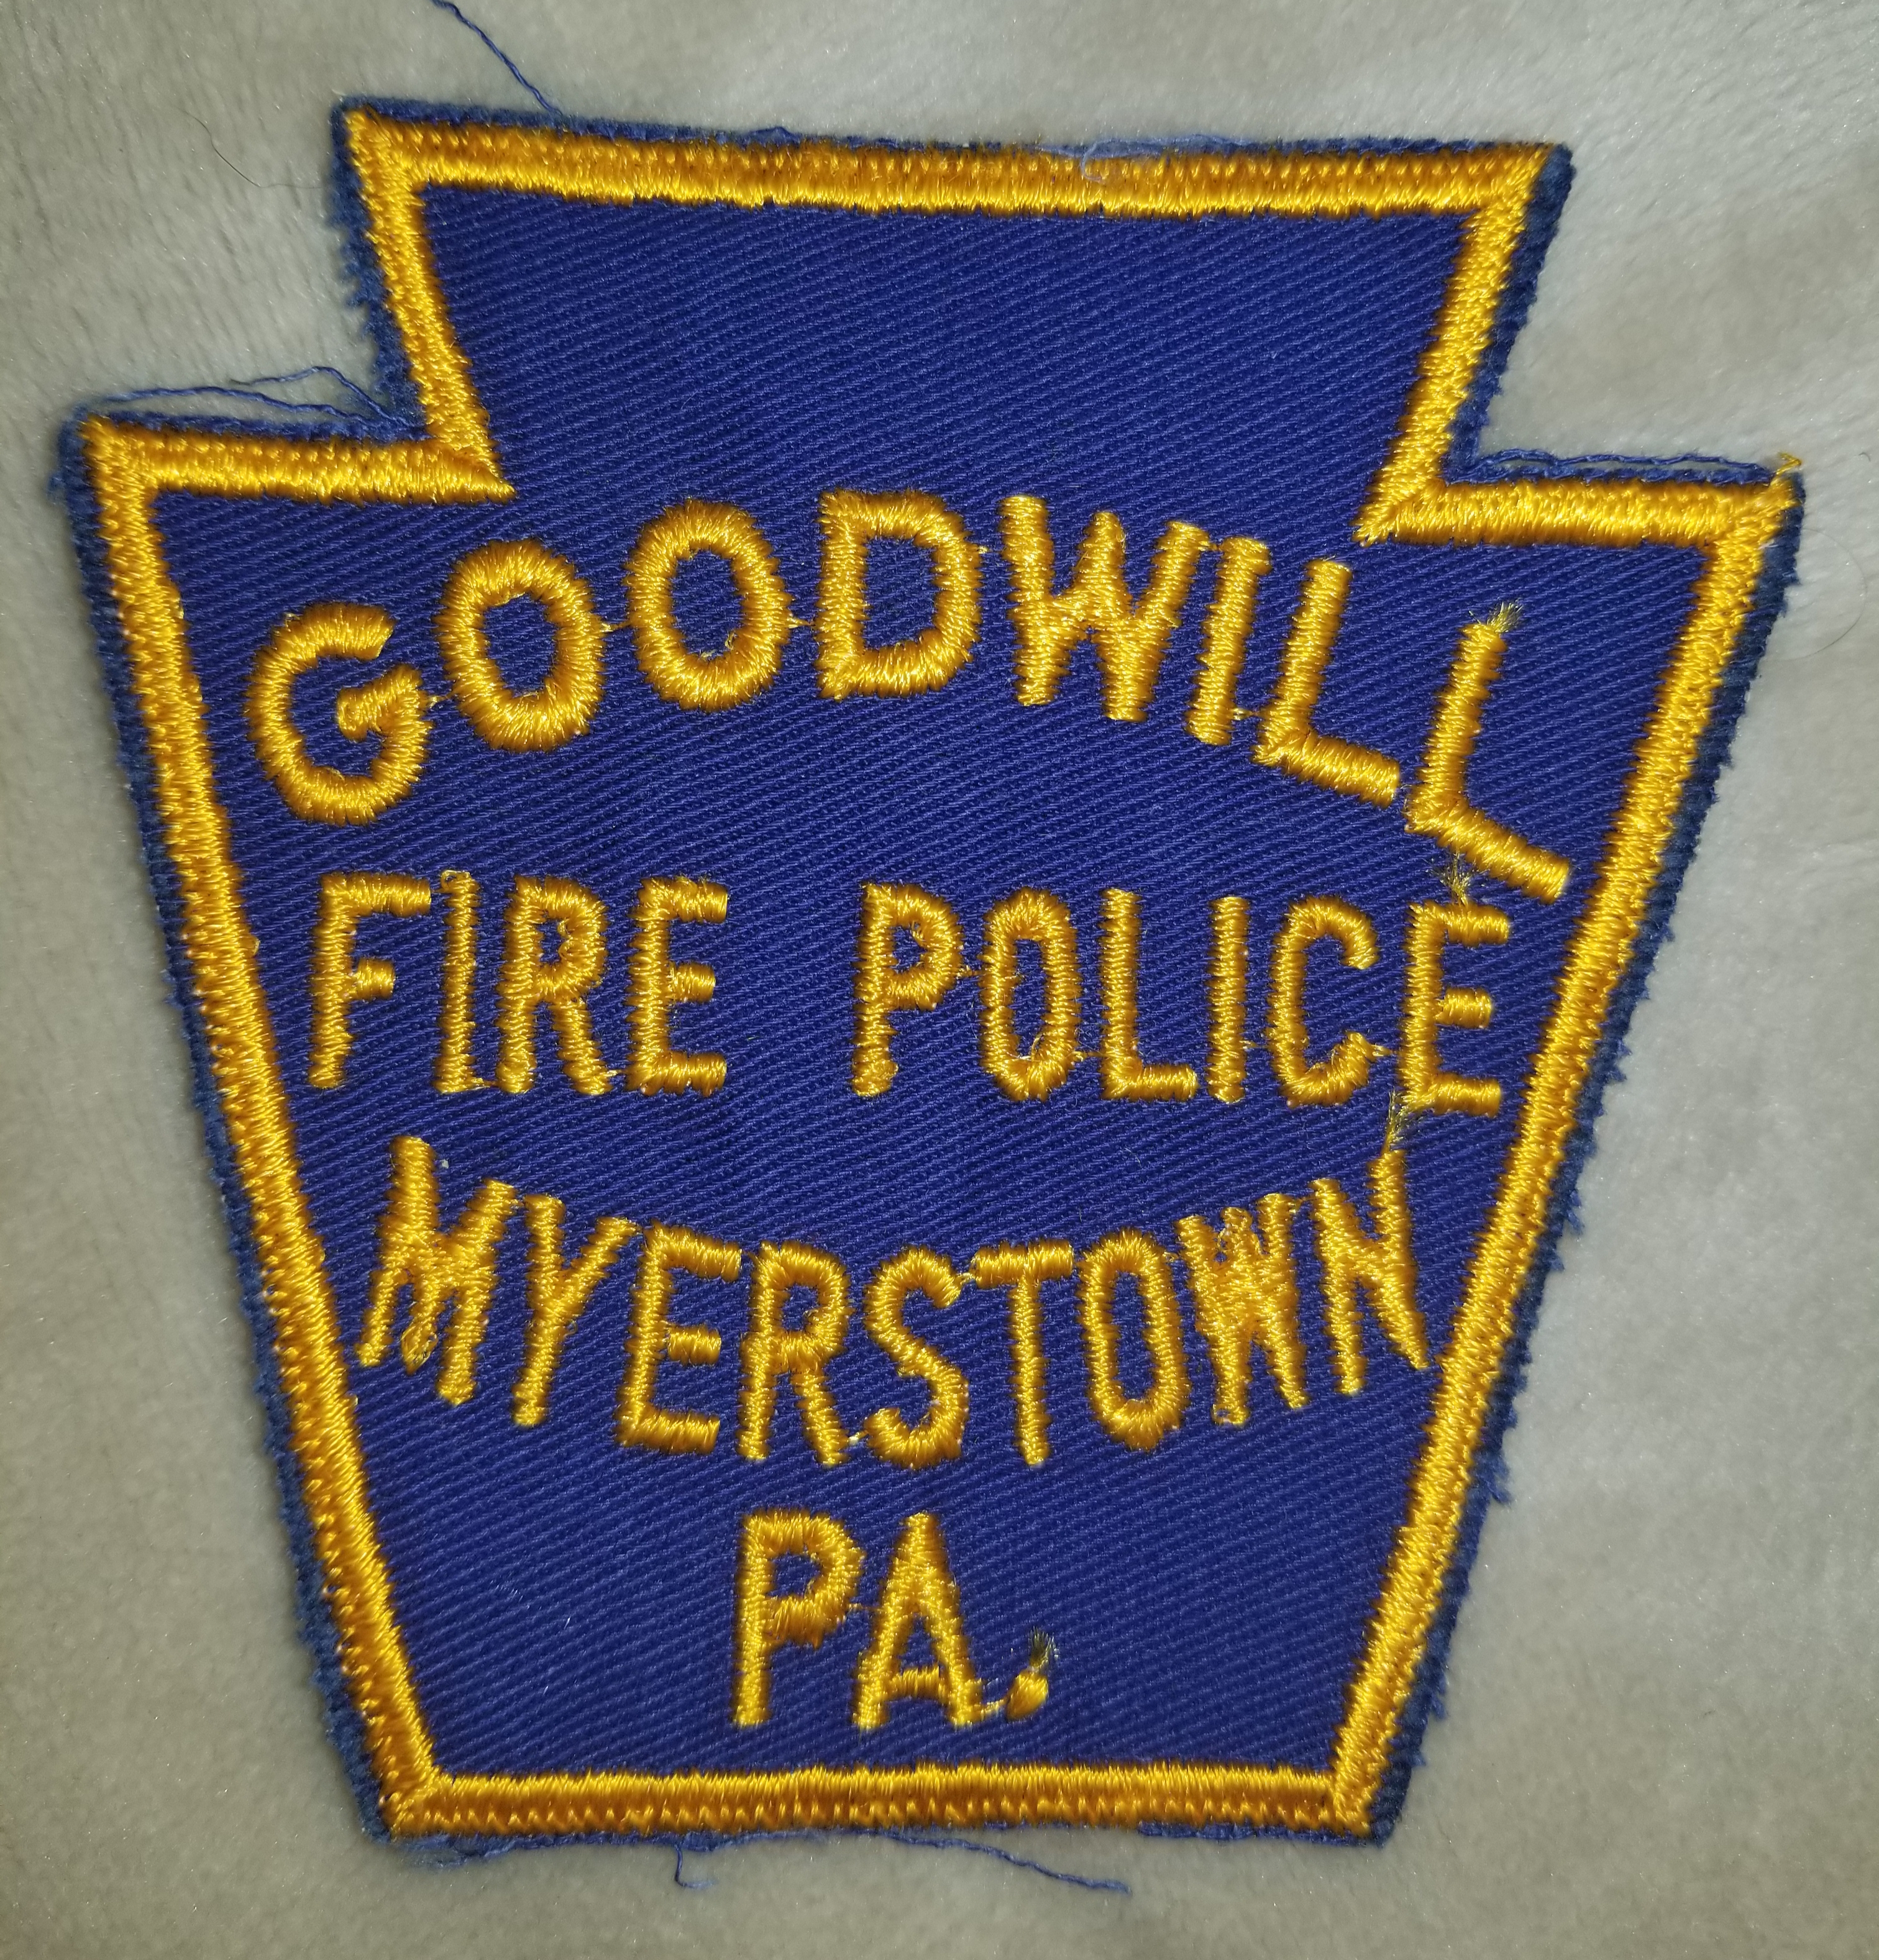 Goodwill Fire Police Myserstown PA